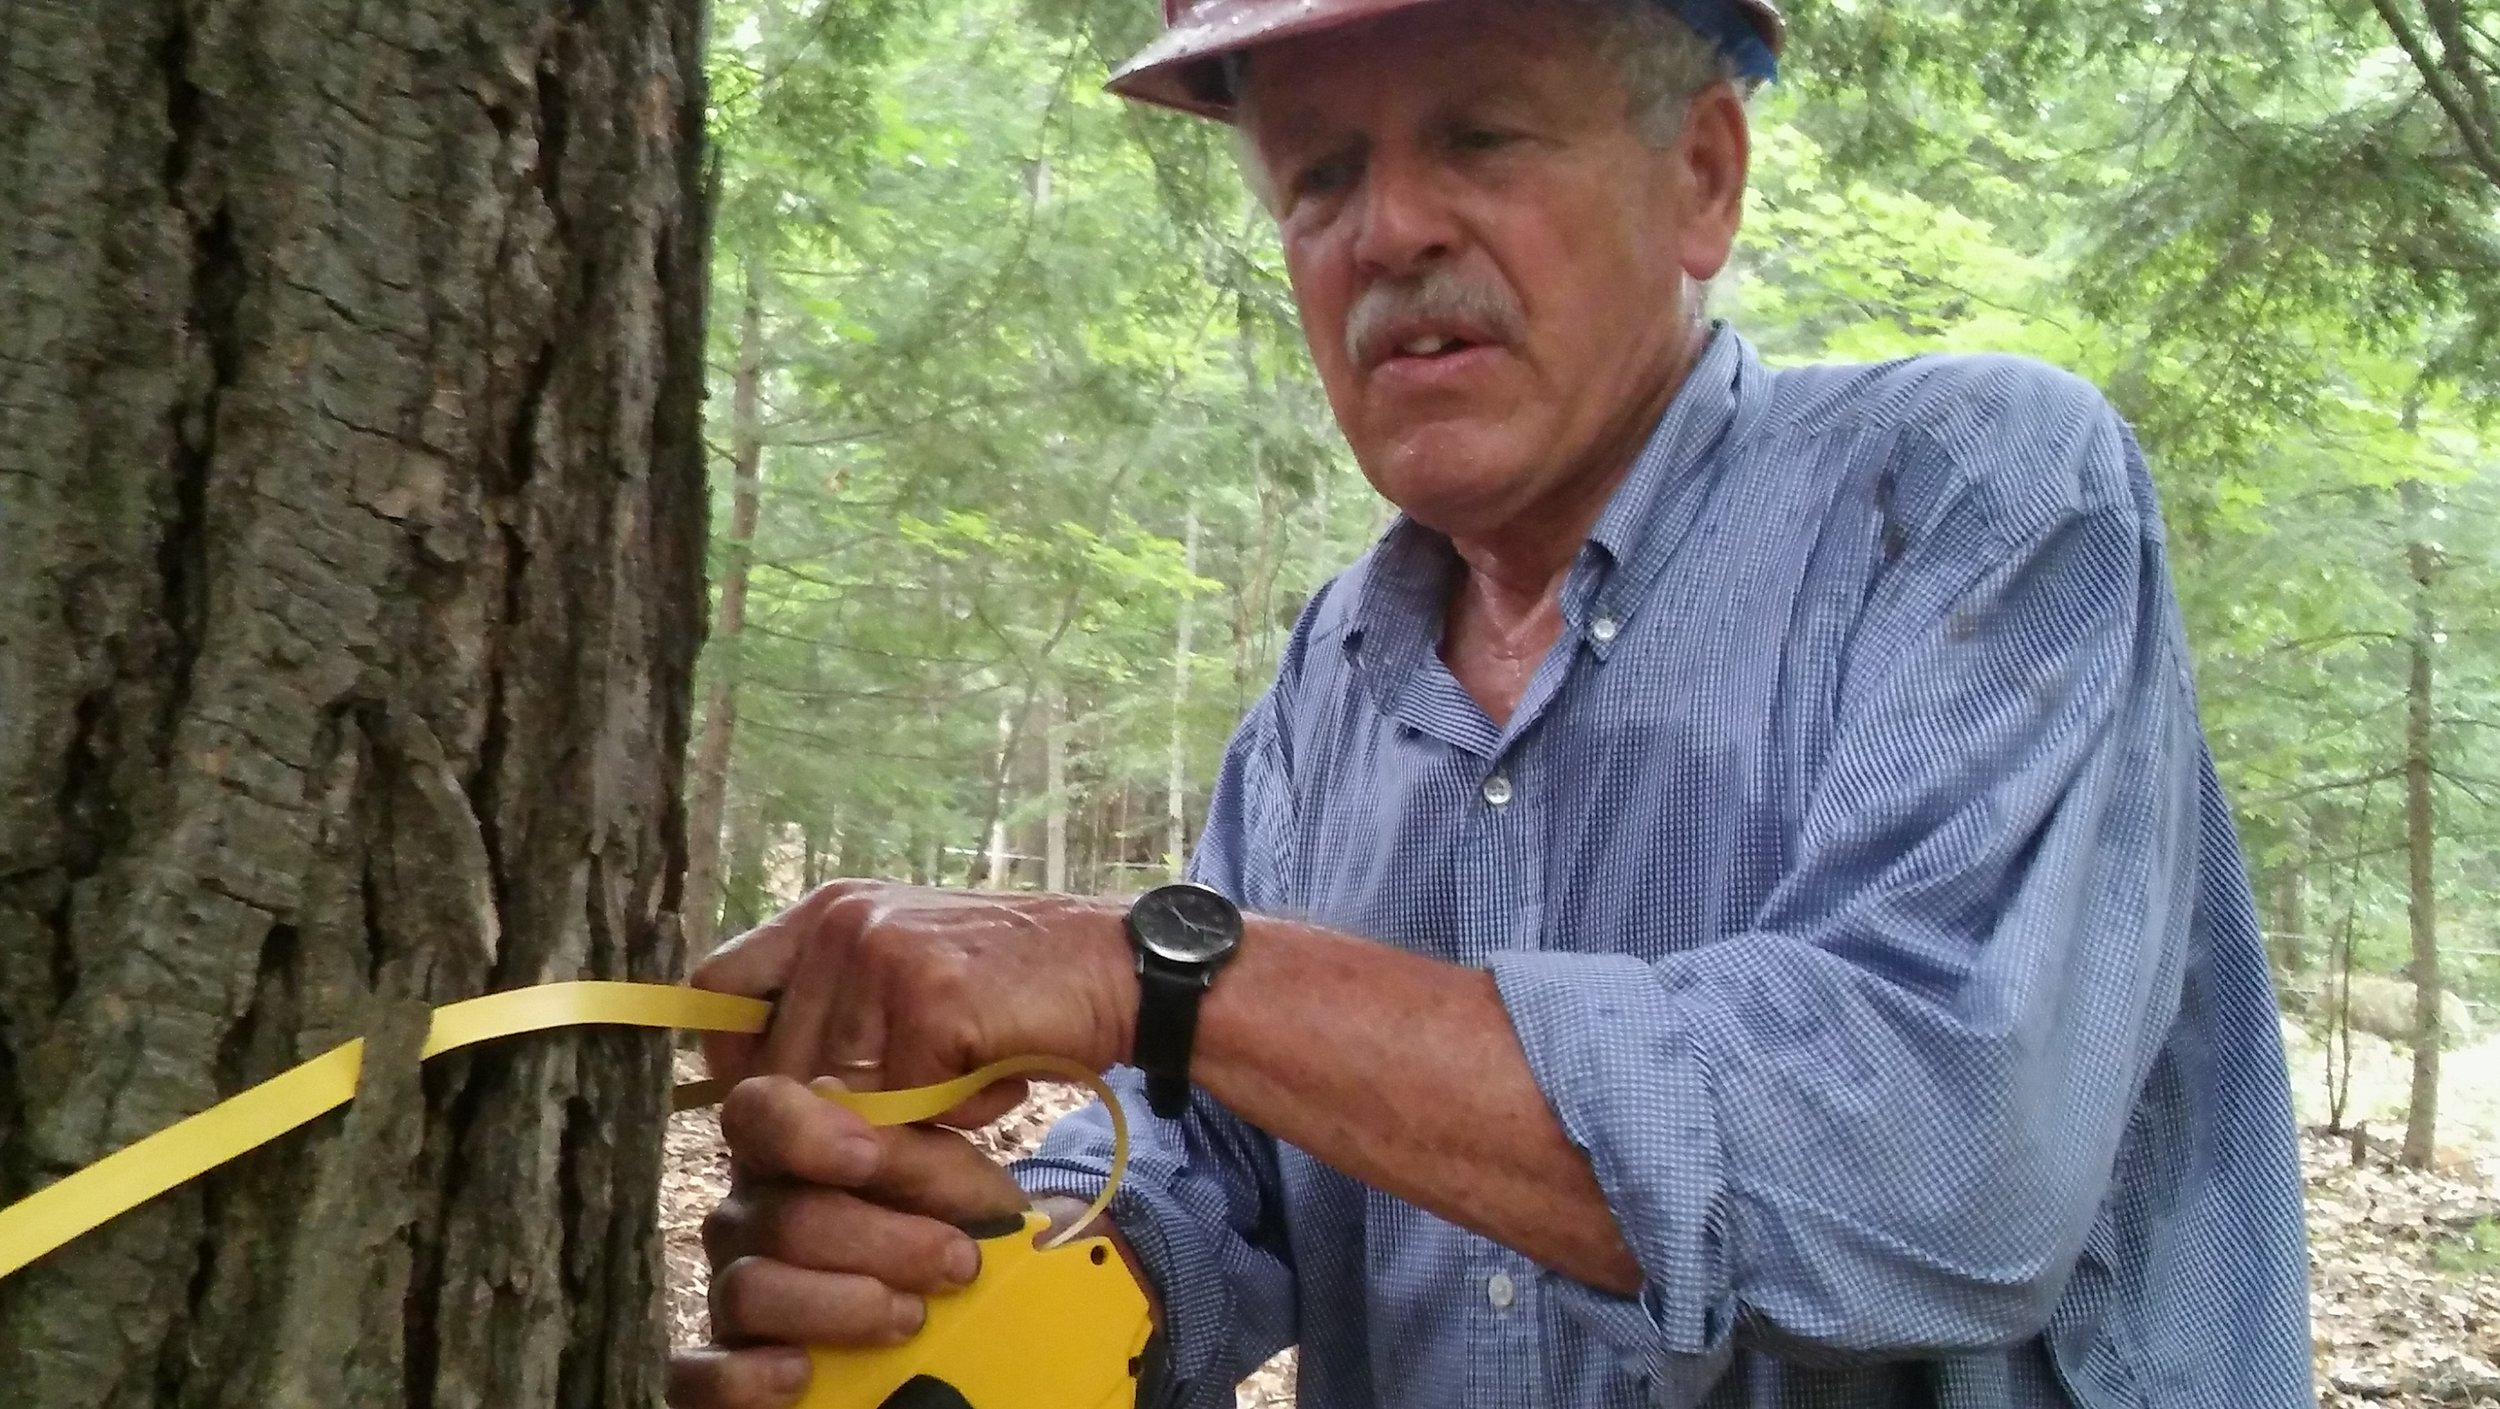 Carbon storage calculations can be done with a few simple tools, as Peter Hagerty demonstrates. Photo: Lee Burnett